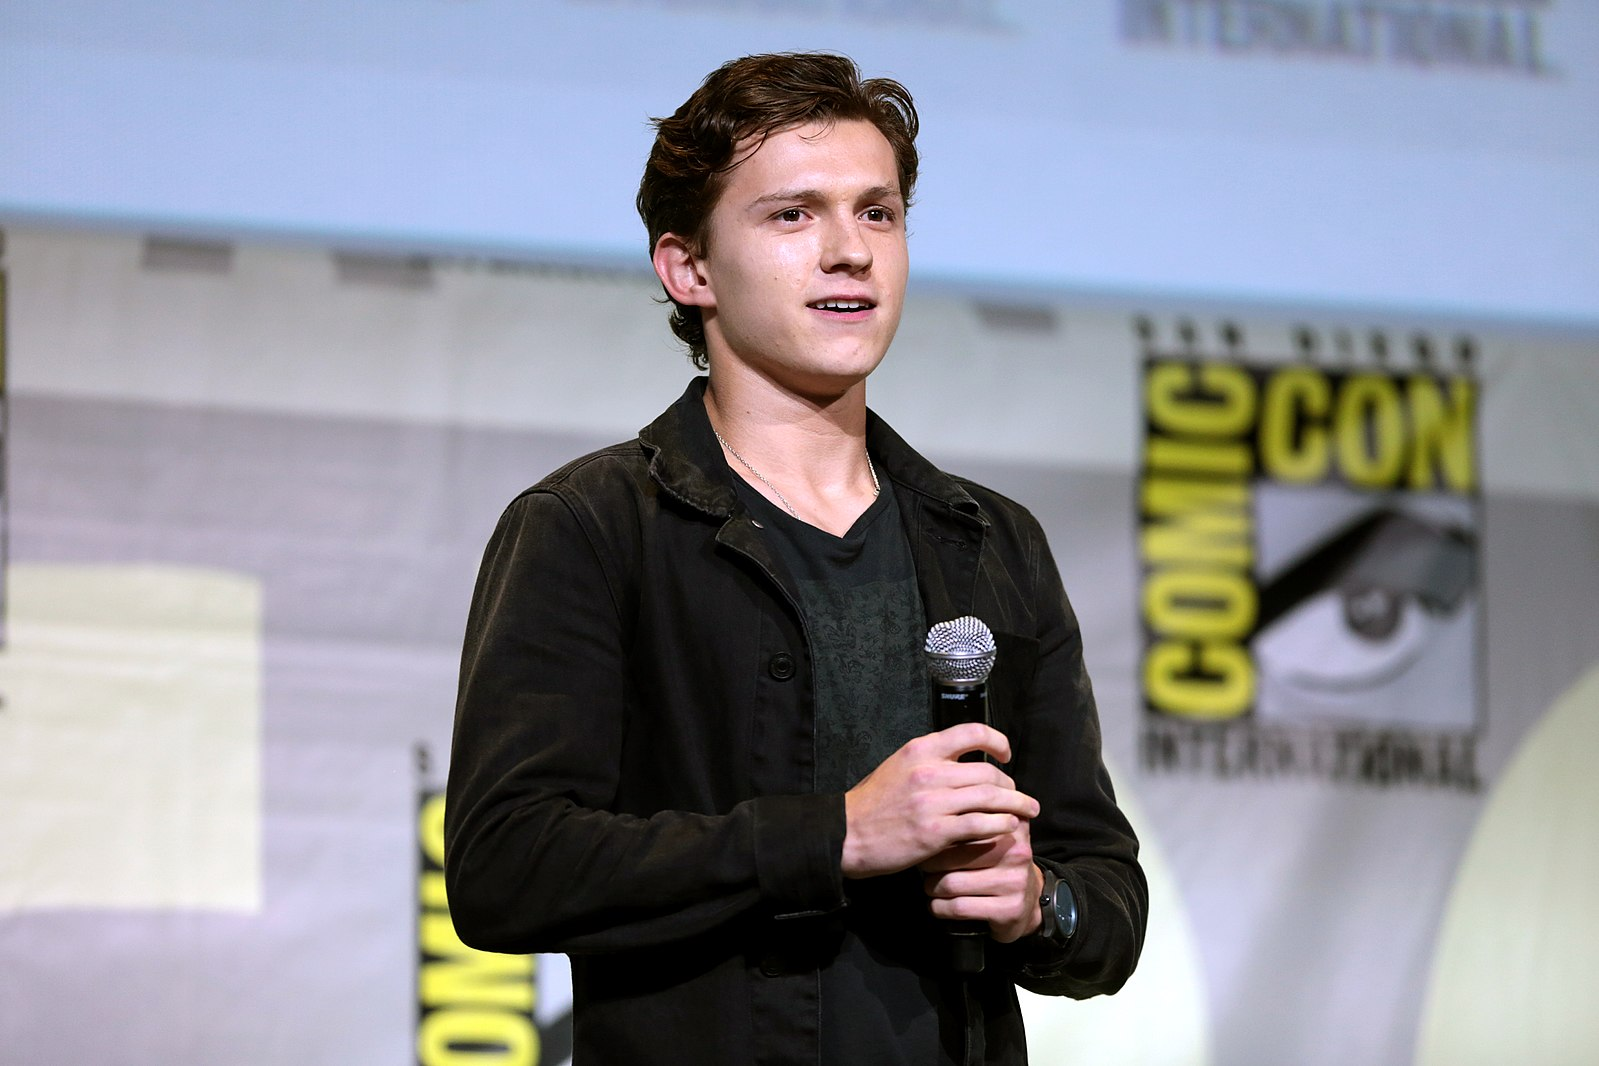 Tom Holland To Film 3rd 'Spider-Man' Movie in Summer 2020